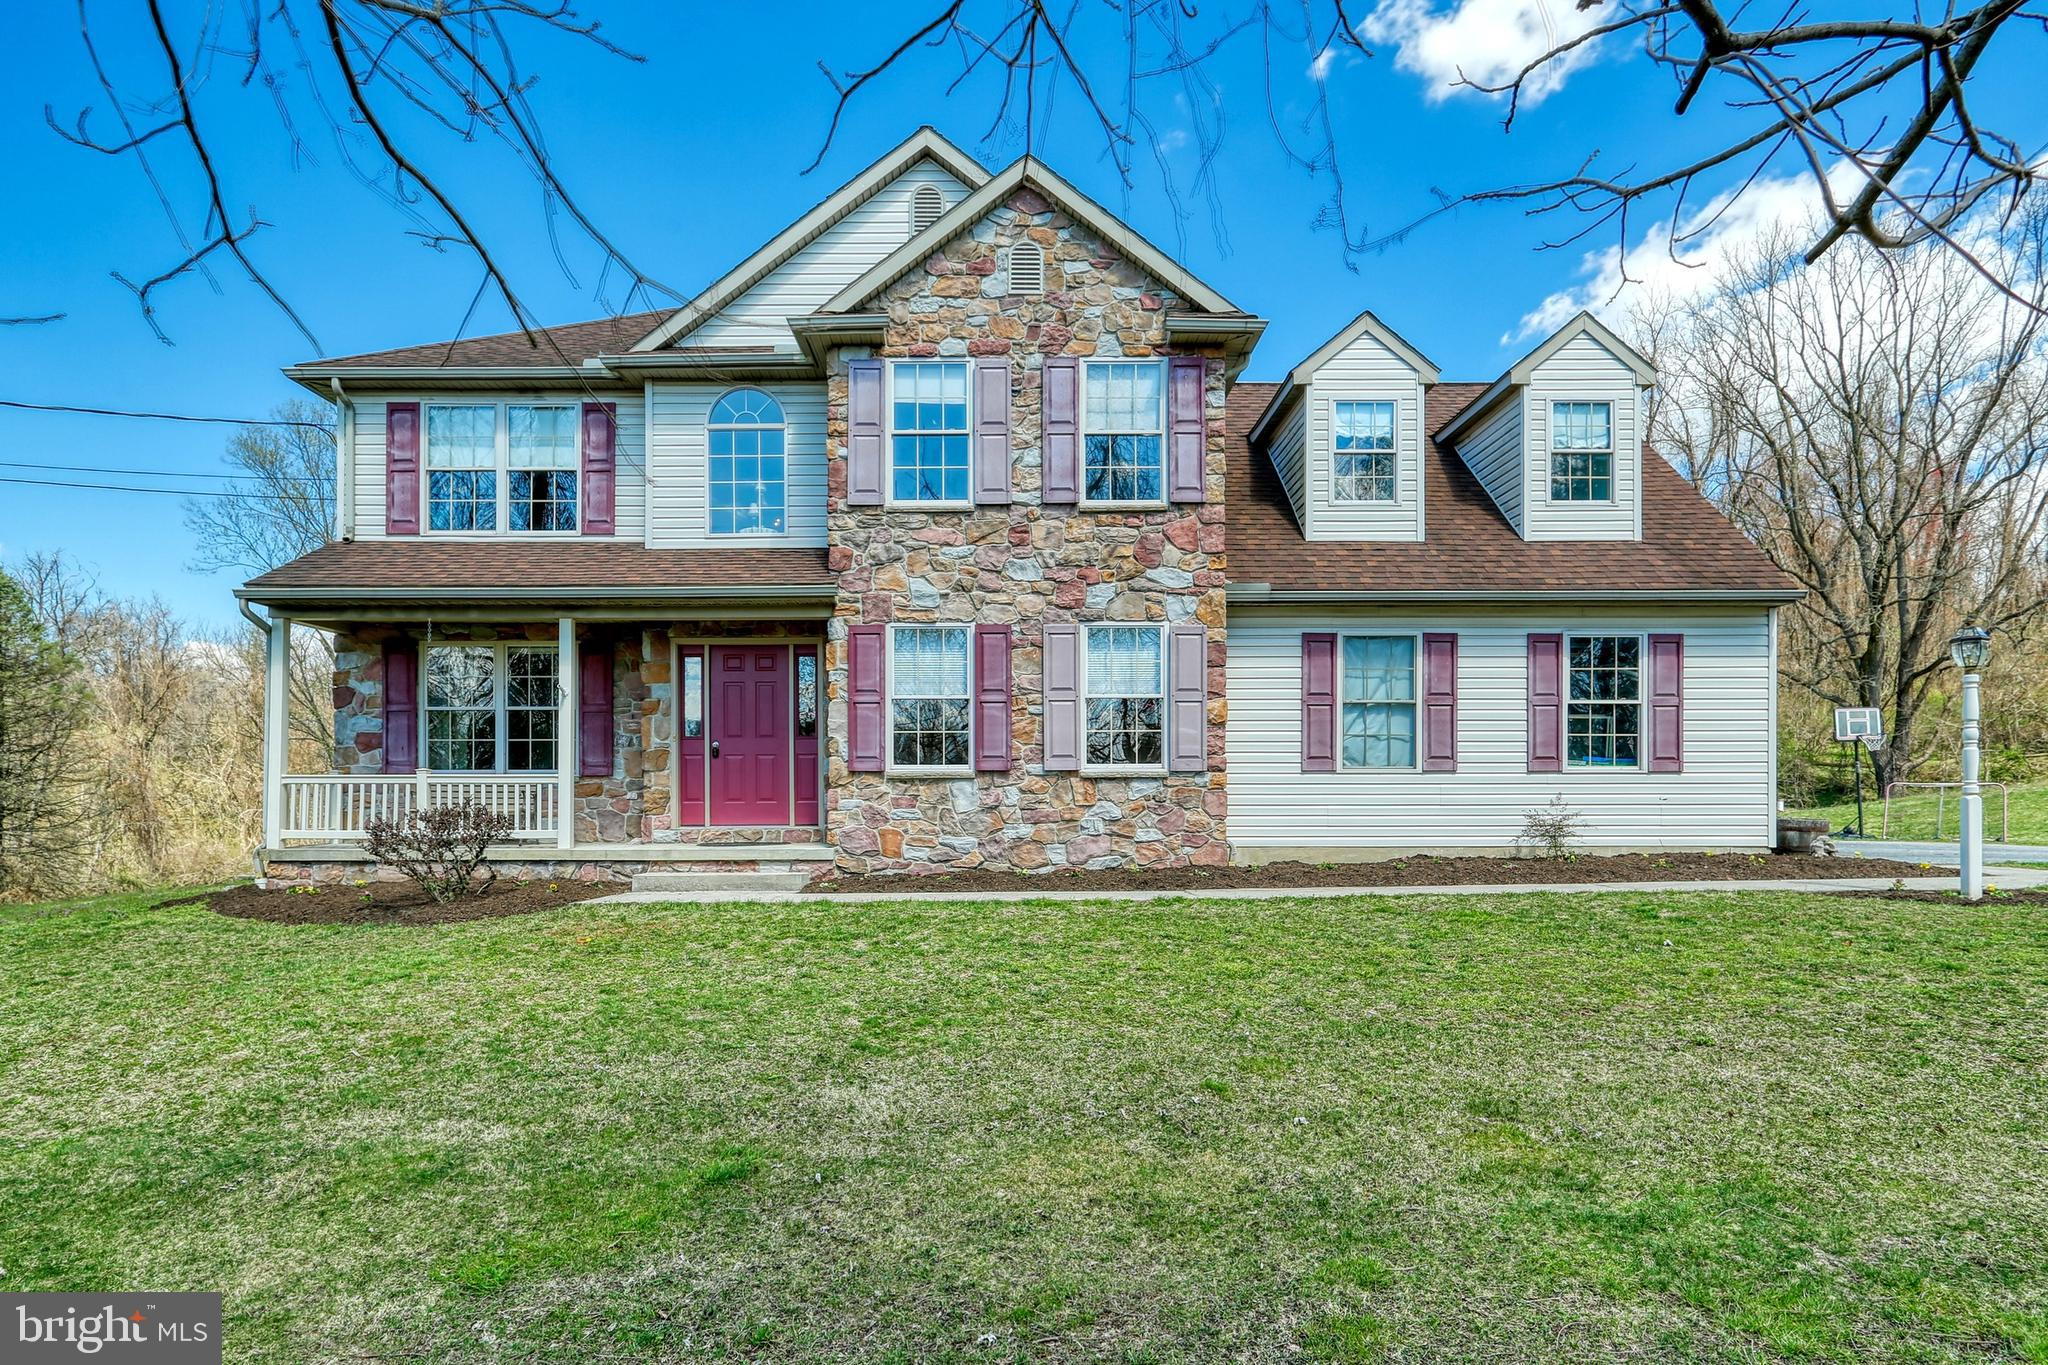 192 LINESTOWN ROAD, WILLOW STREET, PA 17584